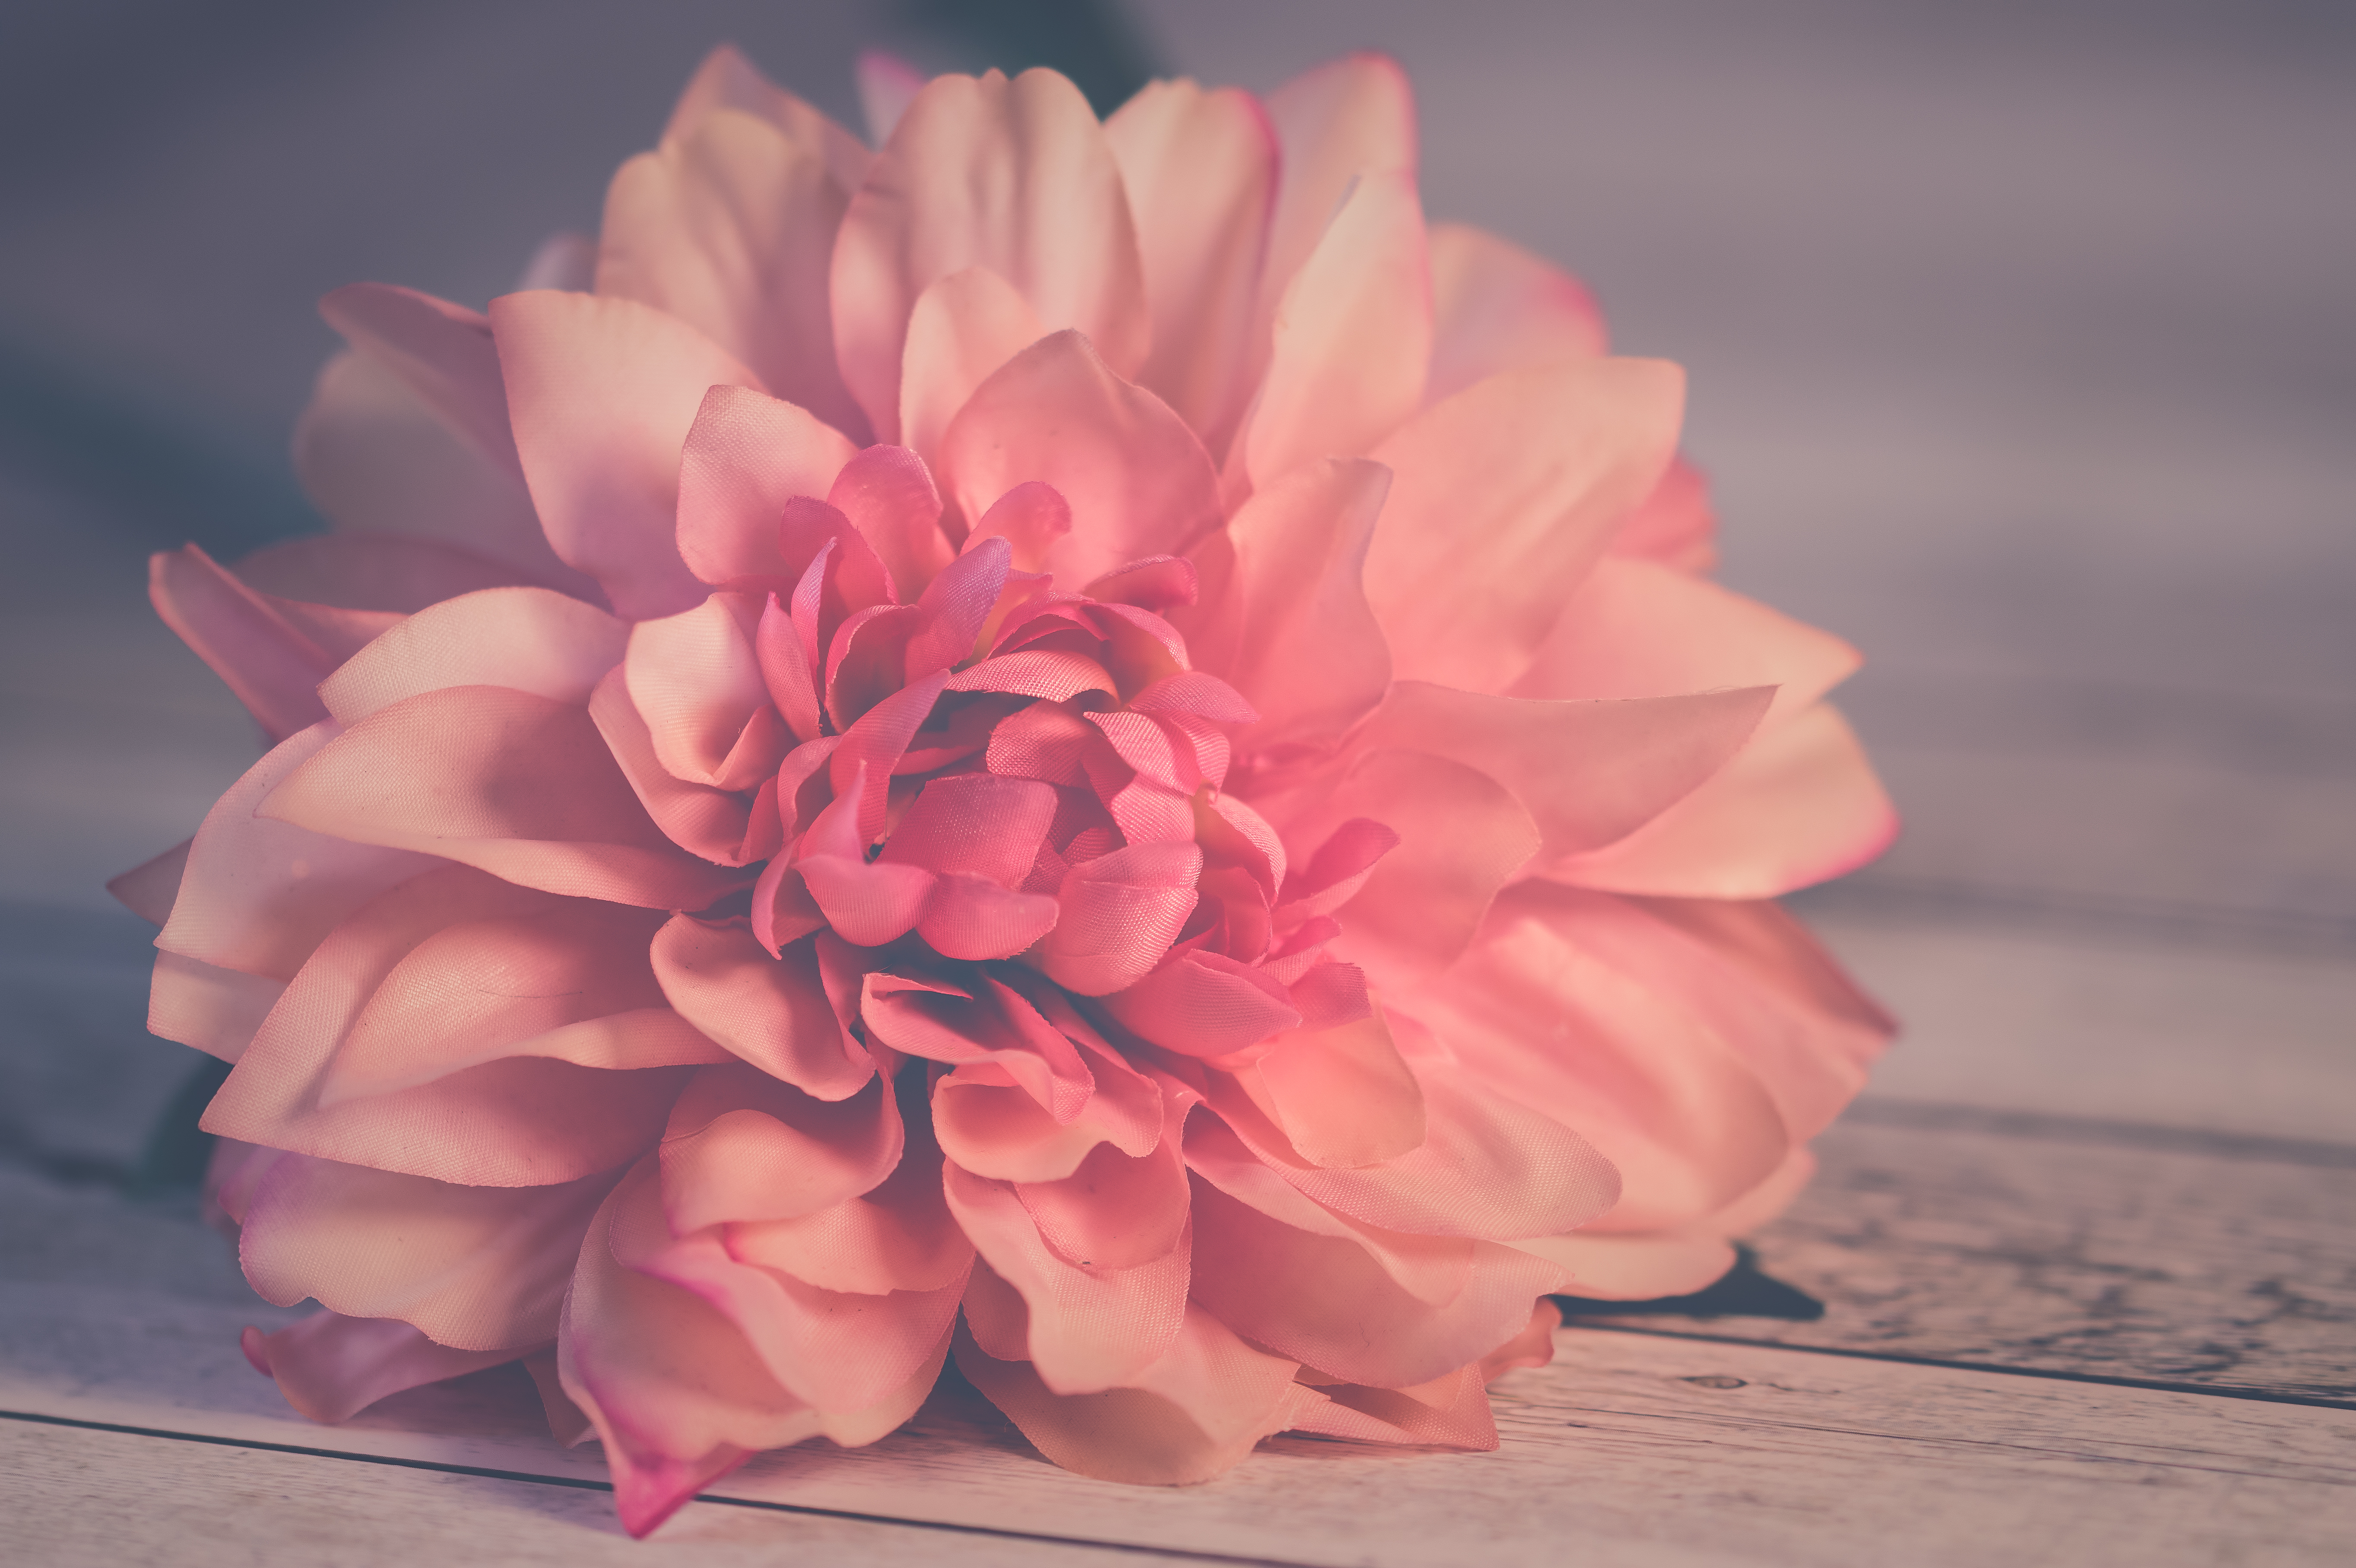 Pink Fall Wallpaper Hd 1000 Great Flower Background Photos 183 Pexels 183 Free Stock